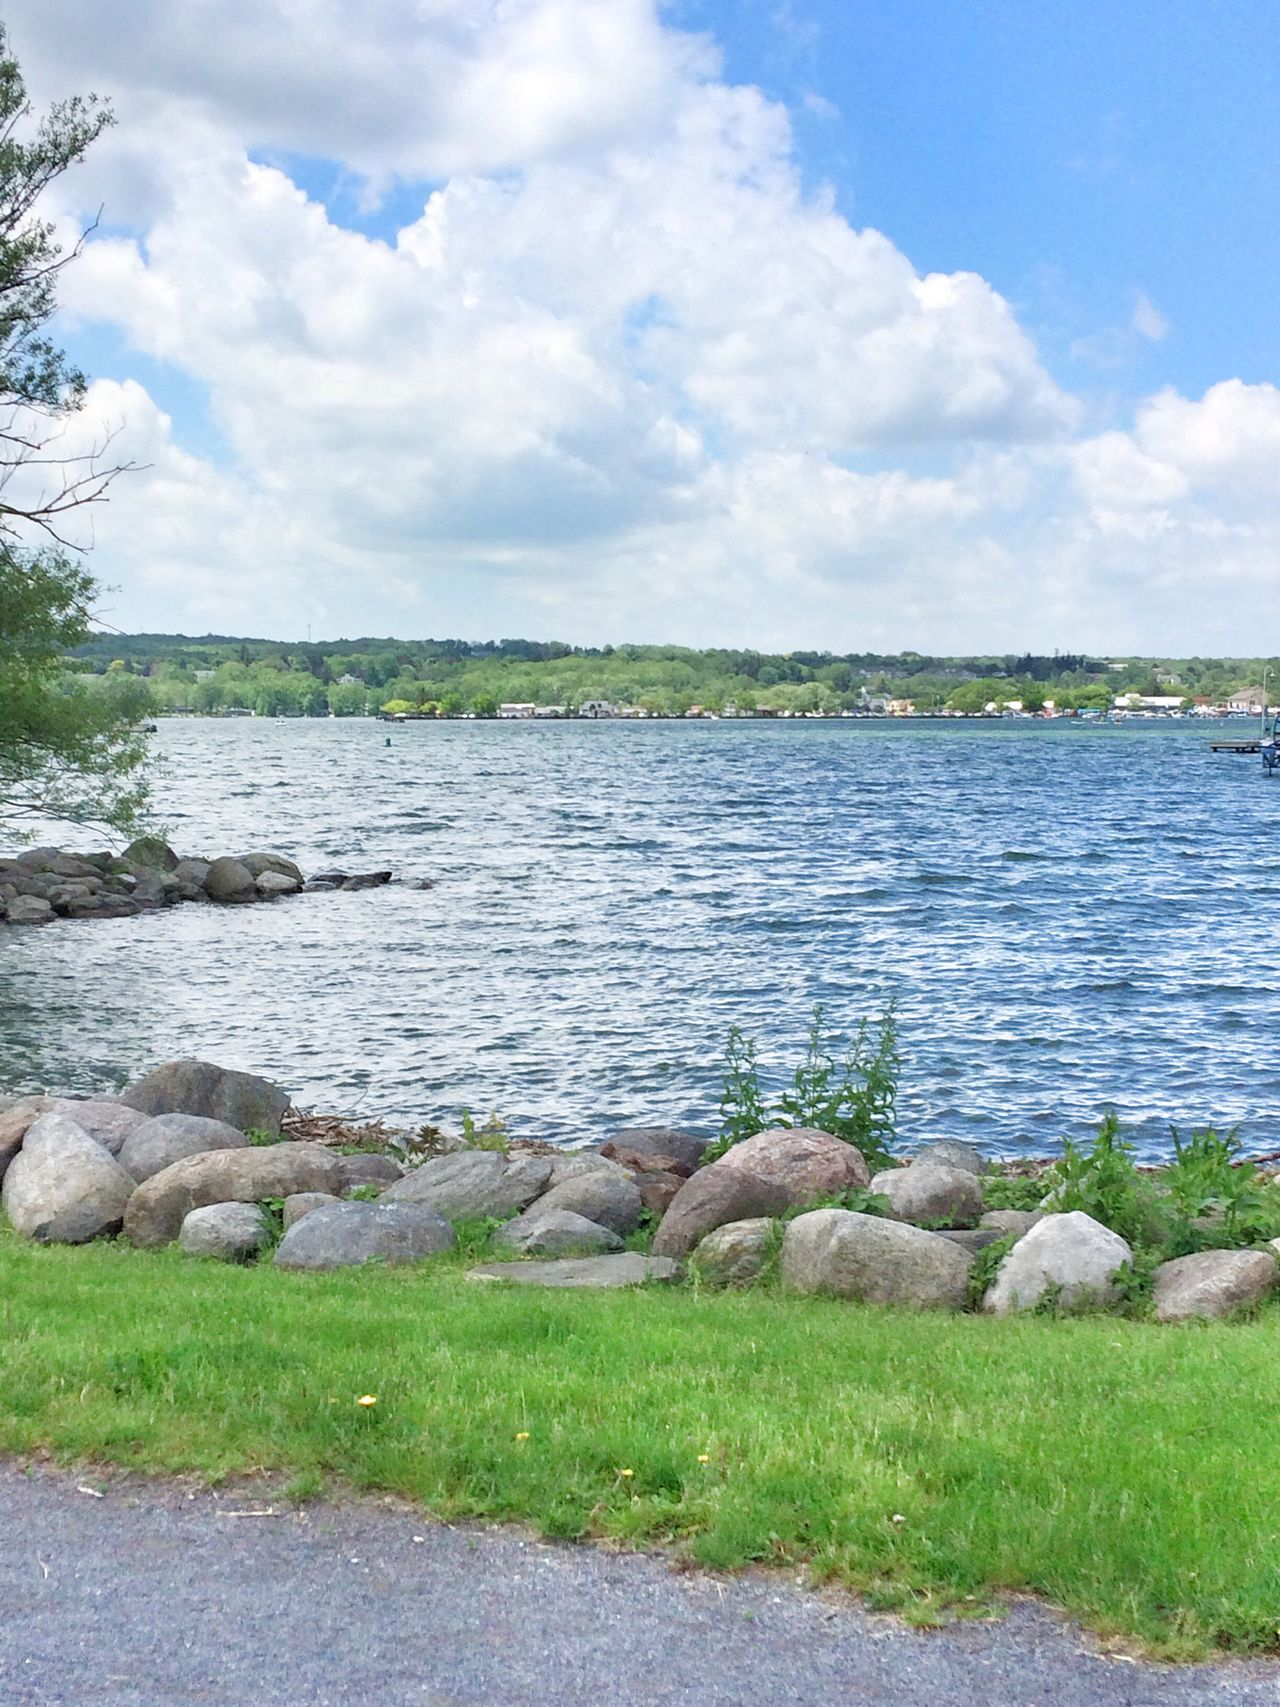 Canandaigua Lake. Canandaigua Water Sky Sky And Clouds Lake Cloud - Sky Nature Grass Beauty In Nature Day Scenics No People Tranquility Tranquil Scene Outdoors Scene Tree